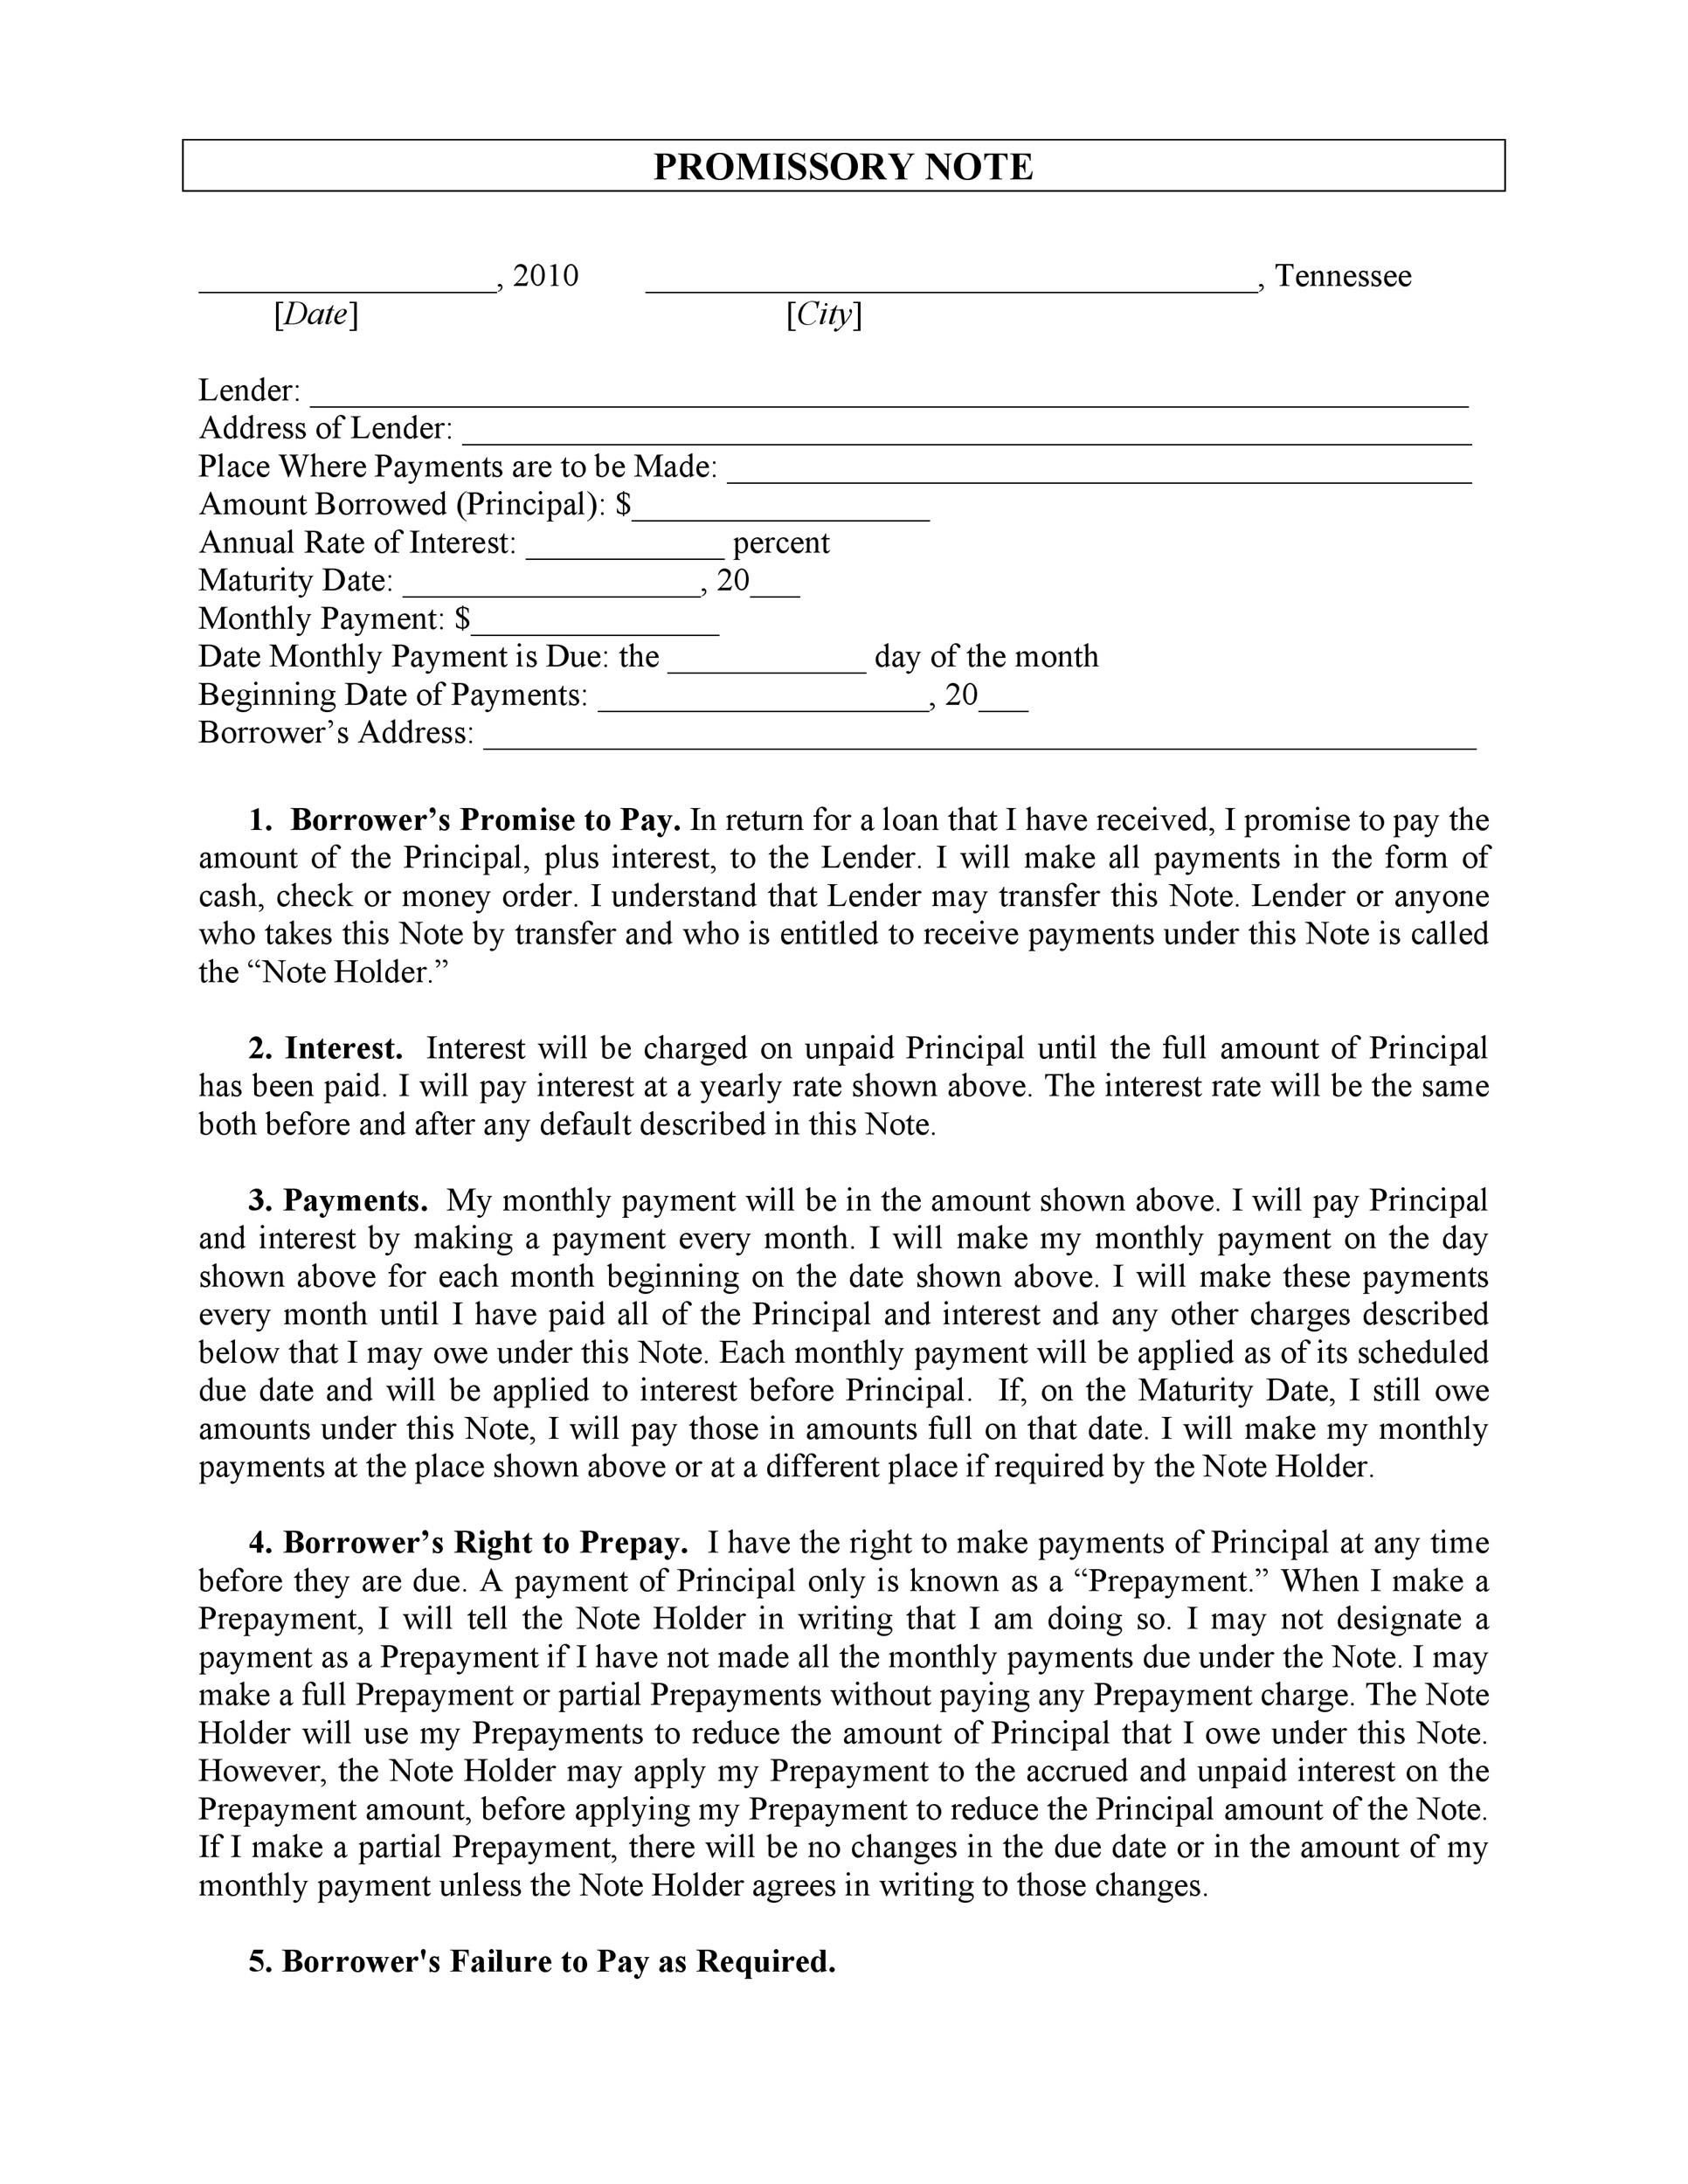 Printable Promissory Note Template 27  Free Printable Promissory Note Template